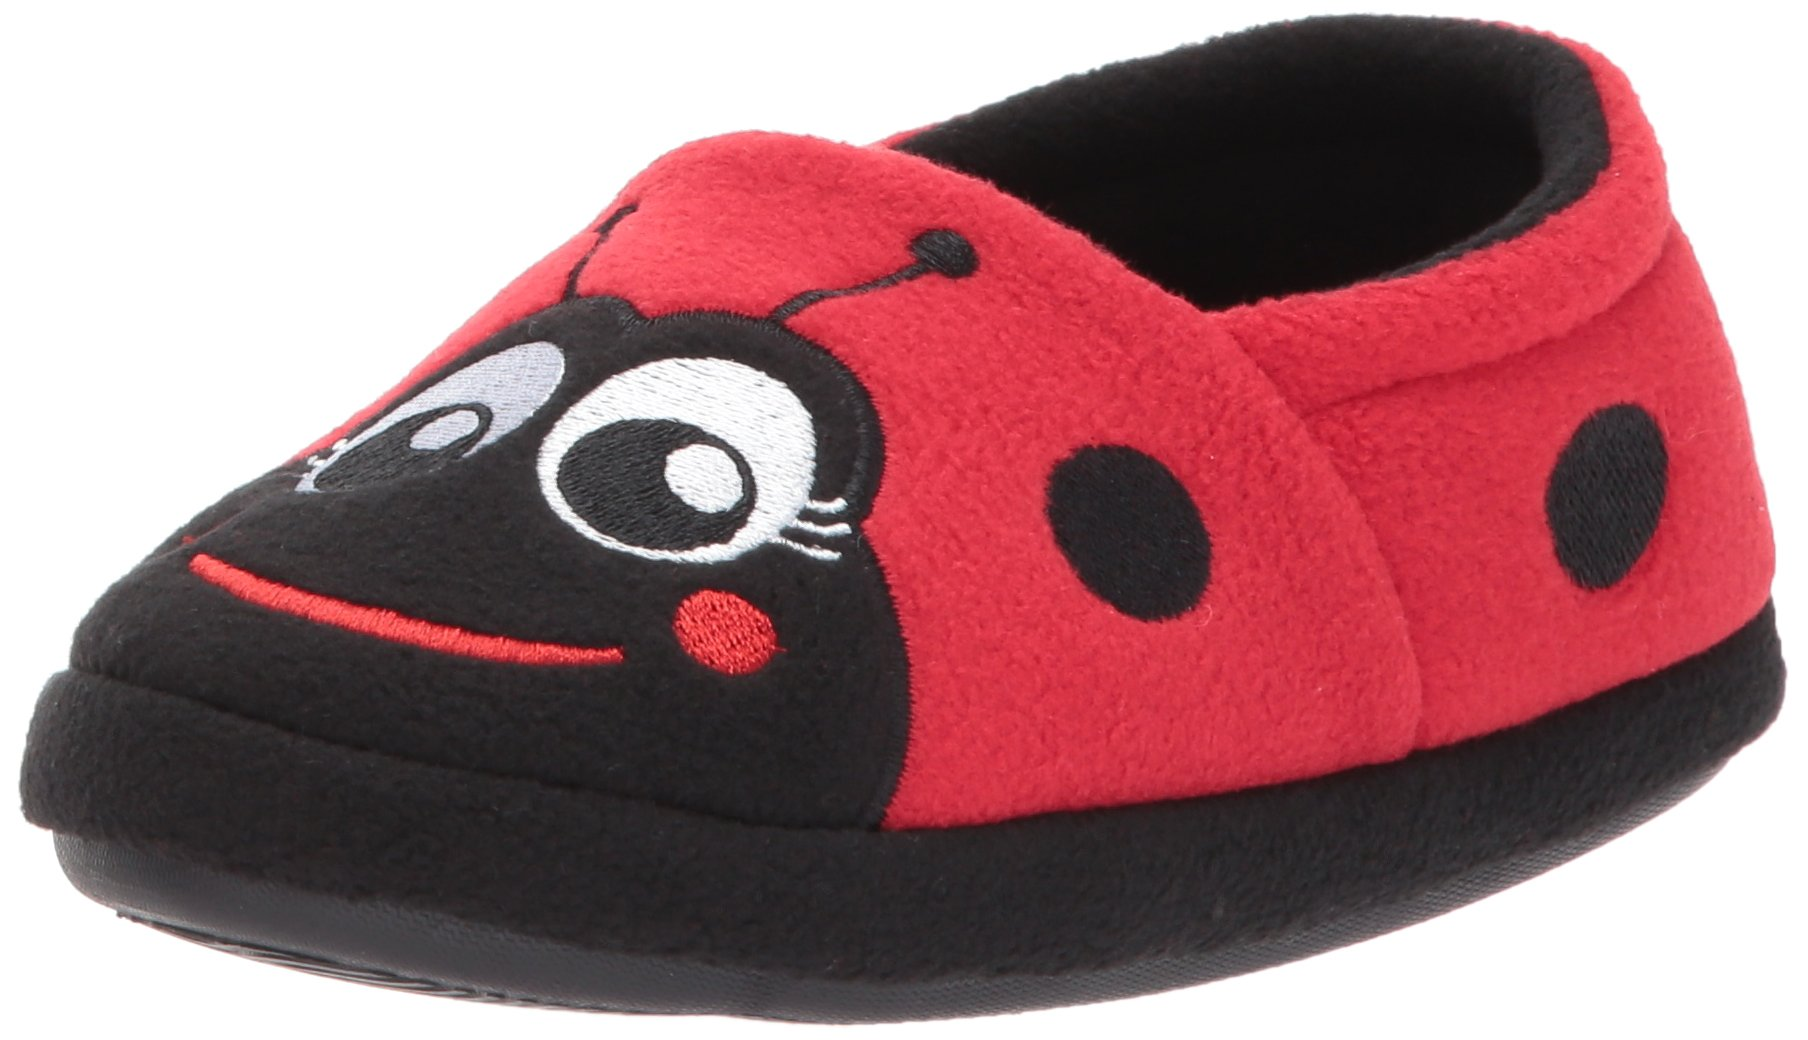 Western Chief Kids Warm and Cozy Slipper, Lucy The Ladybug, 7 M US Toddler